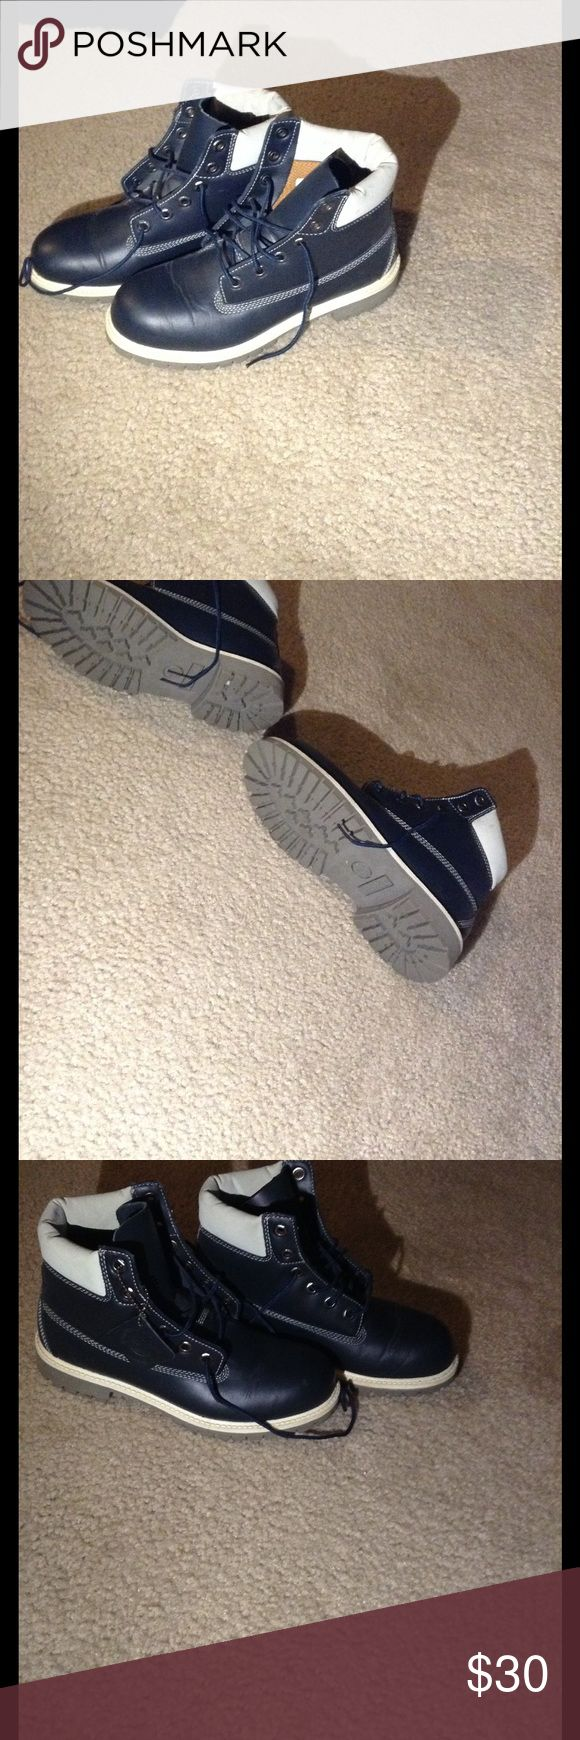 Blue and white timberland boots Used boots. Good condition. Timberland Shoes Boots